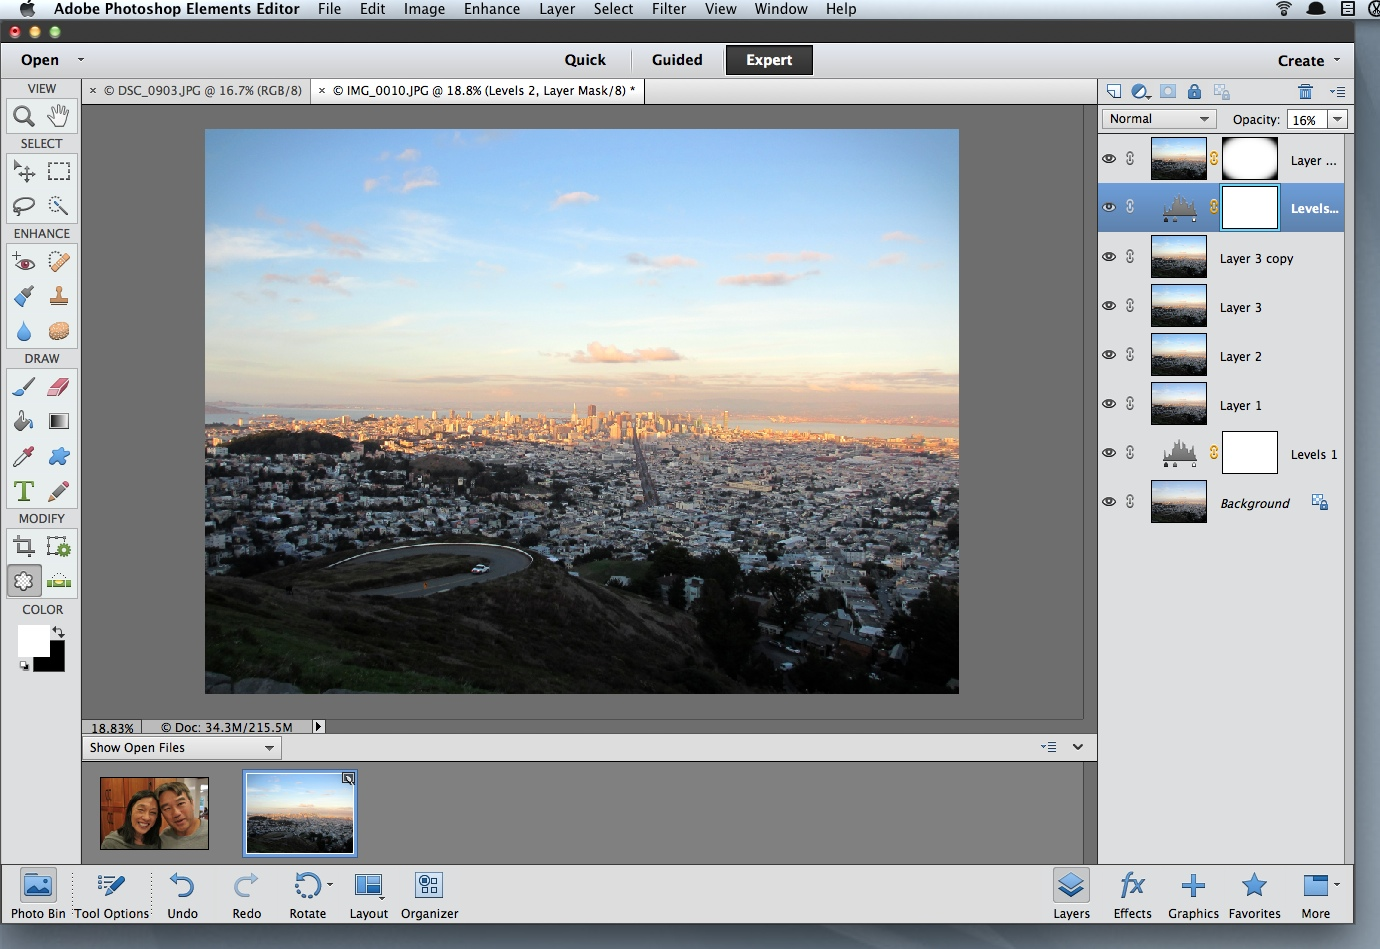 How to fix color cast in photoshop elements - How To Fix Color Cast In Photoshop Elements 55